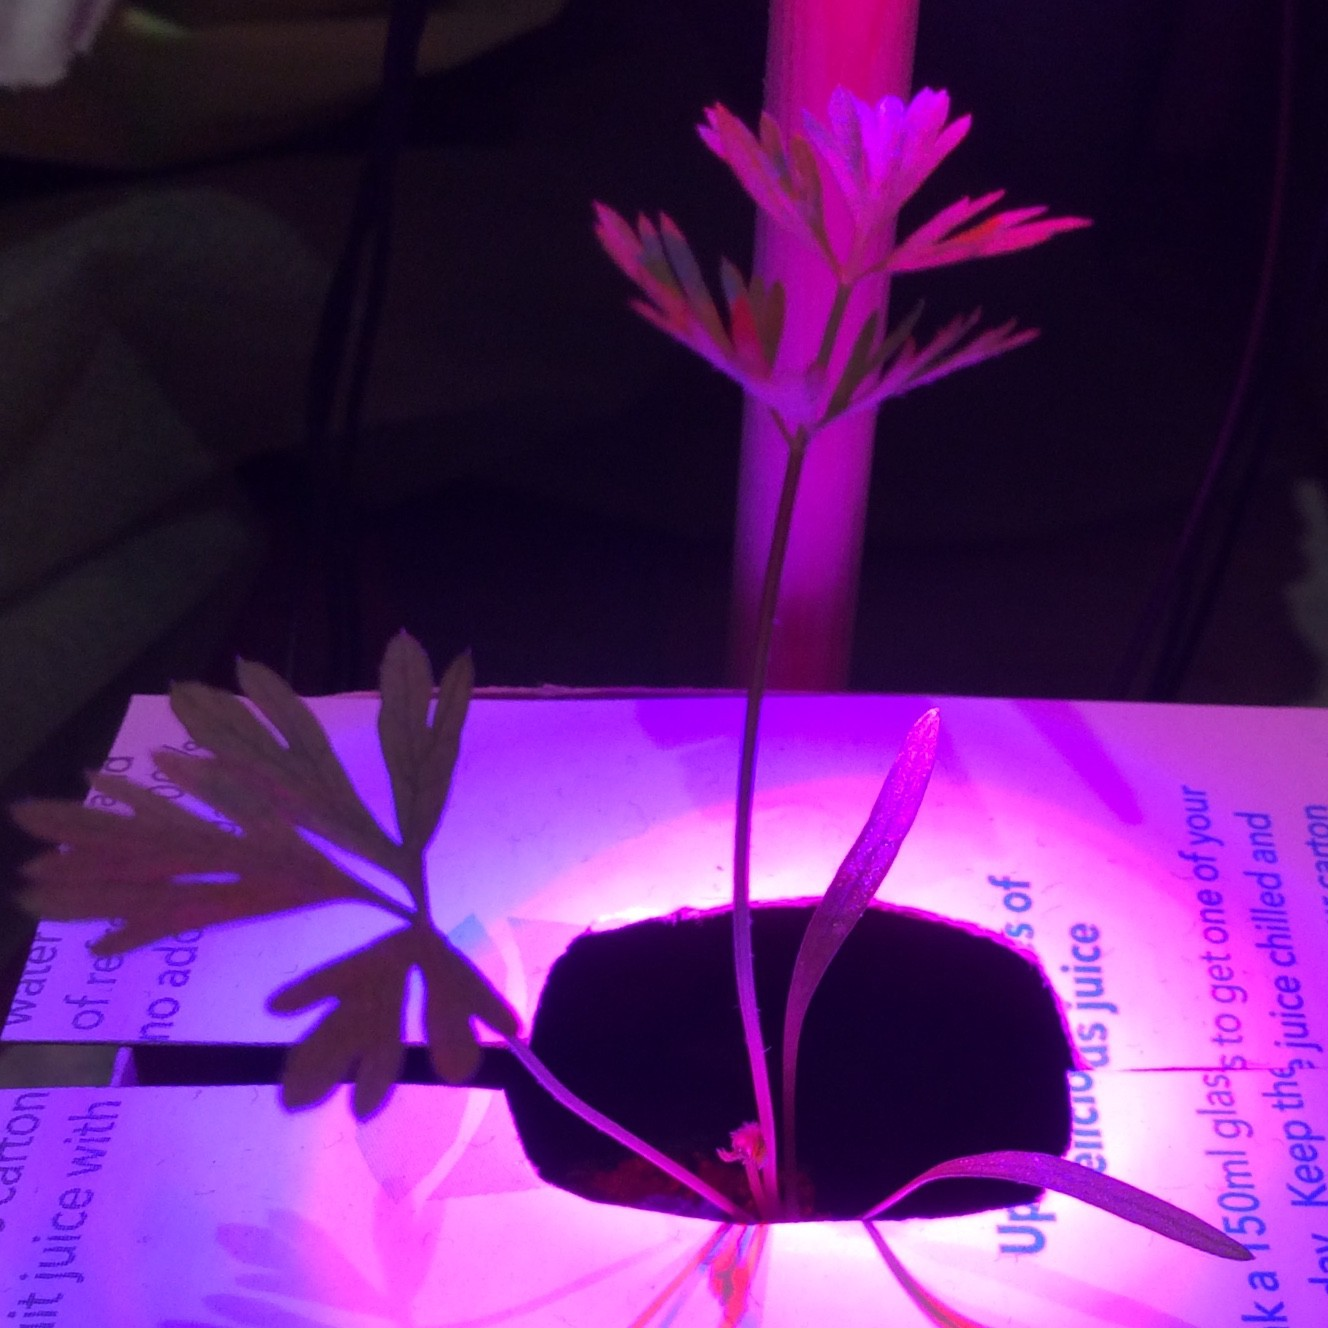 Growing Vegetables In Sealed Containers Wire Wrapped Circuit Board With Purple Glass More The Stems Are Very Elongated Where Leaves Grow Upwards Until They Almost Touching Leds So It Seems As Though Would Prefer To Have